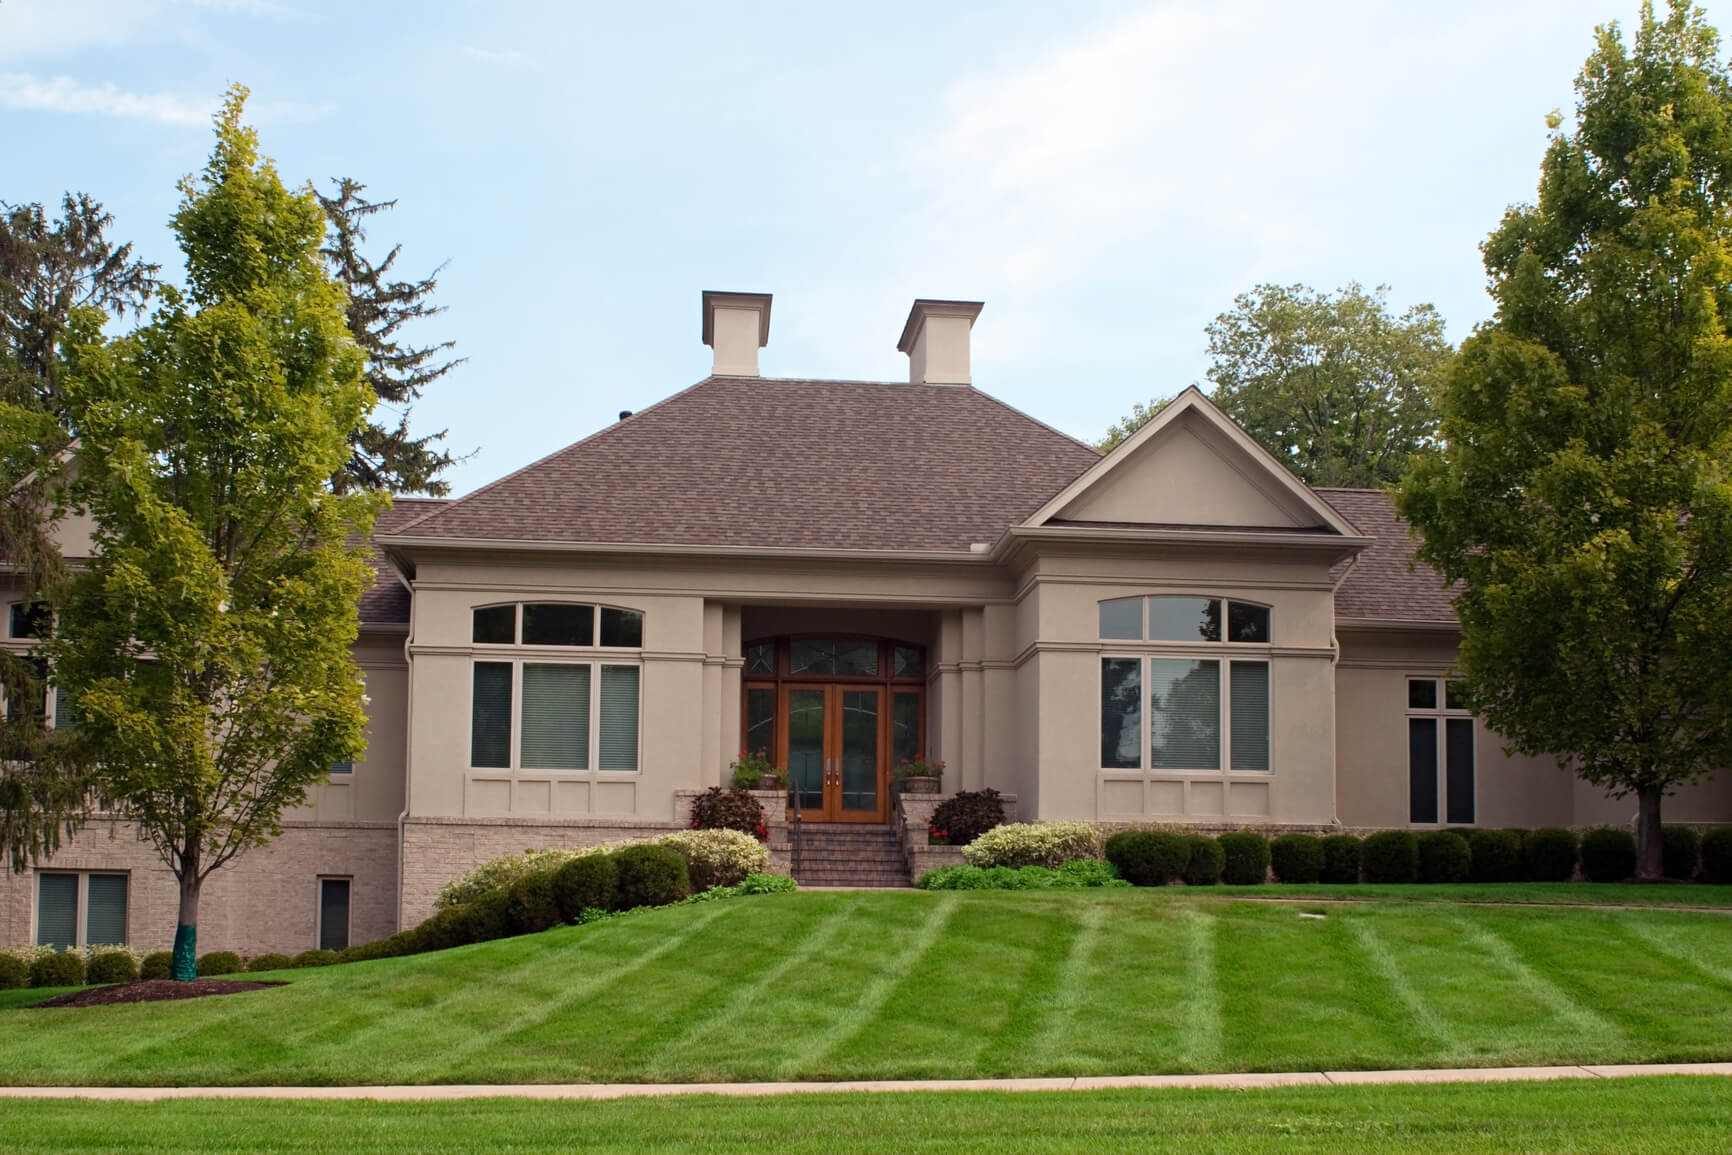 Budget-Friendly Curb Appeal Ideas: Keep your lawn mowed and manicured